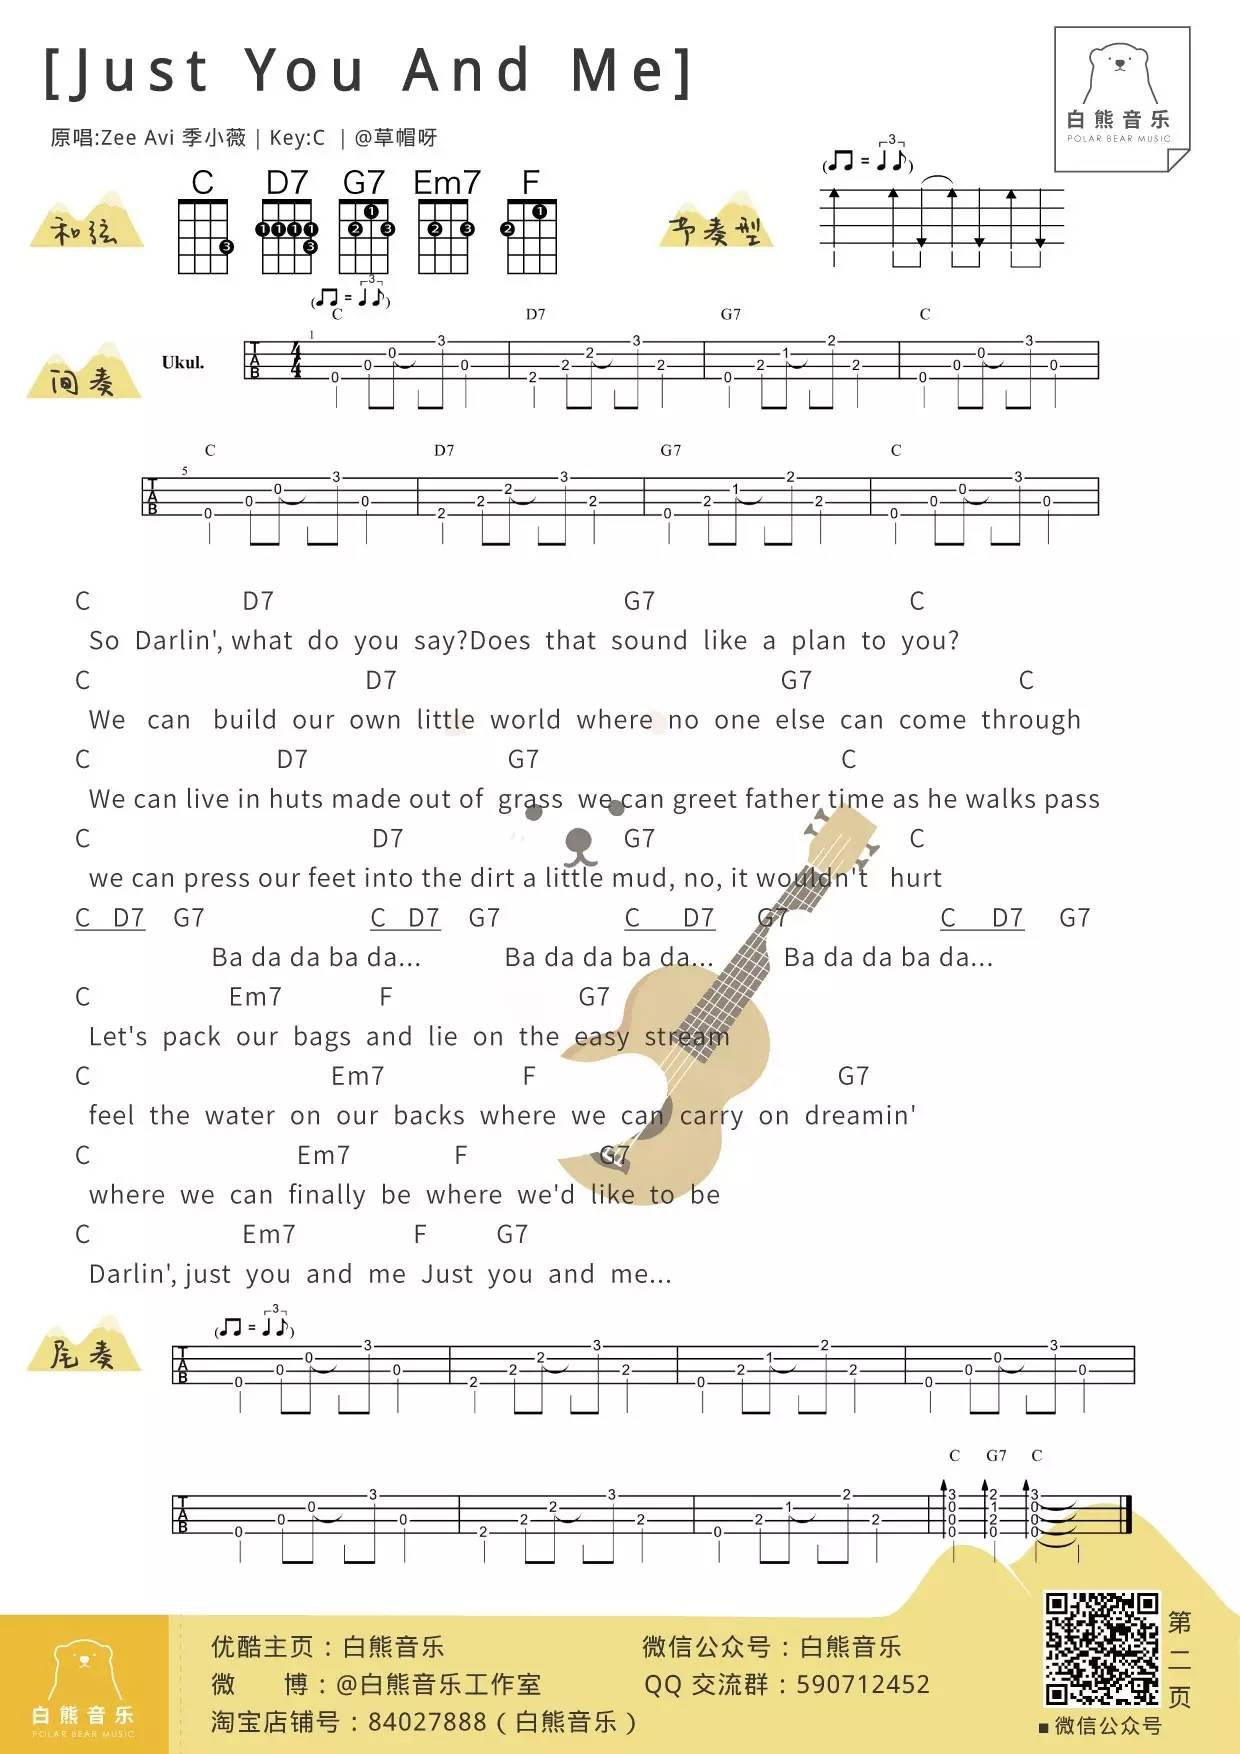 《Just you and me》ukulele谱